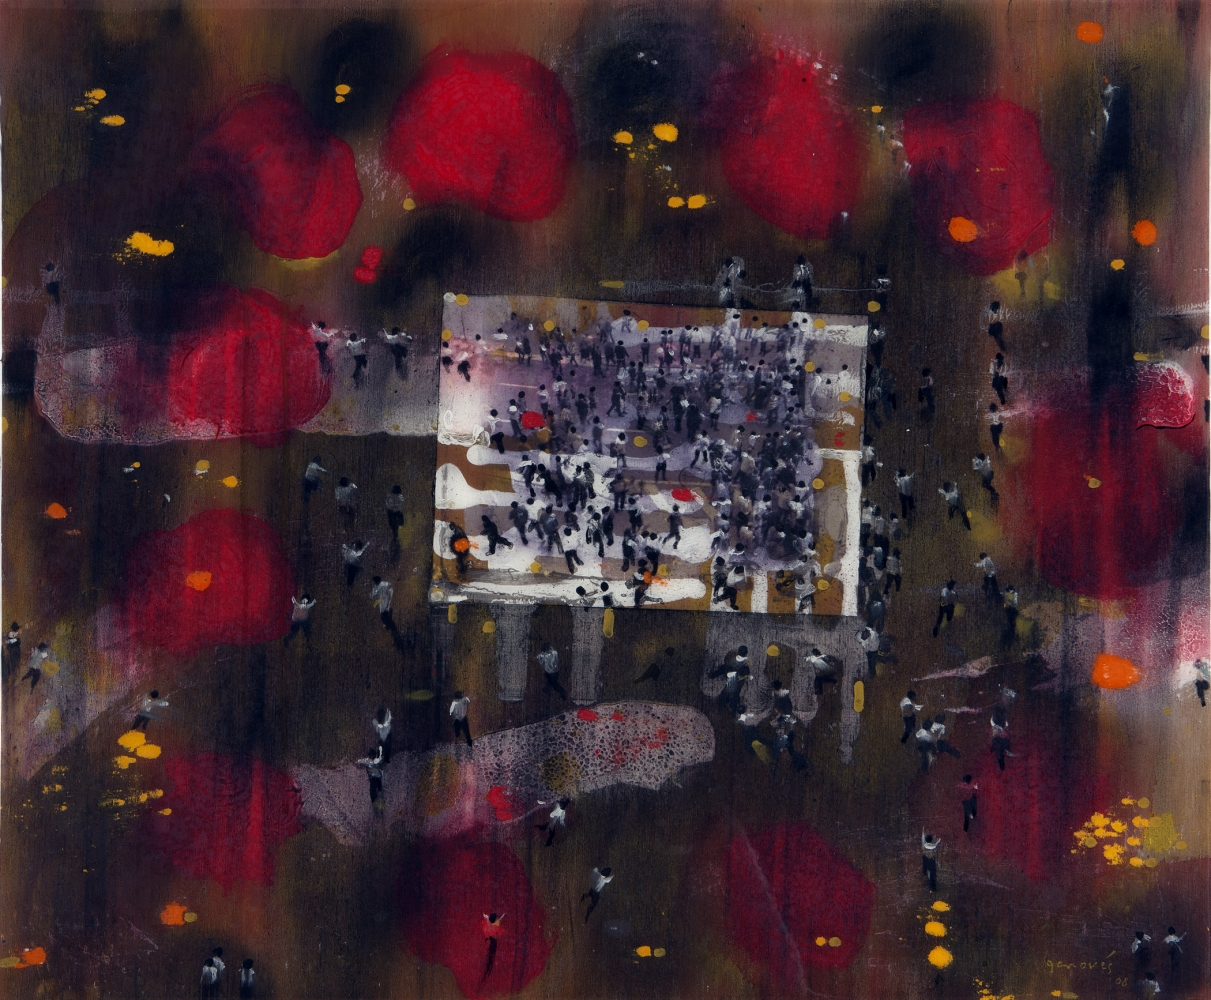 Abstract painting of red and black coloring overlaying image of large crowds of people by Juan Genovés.